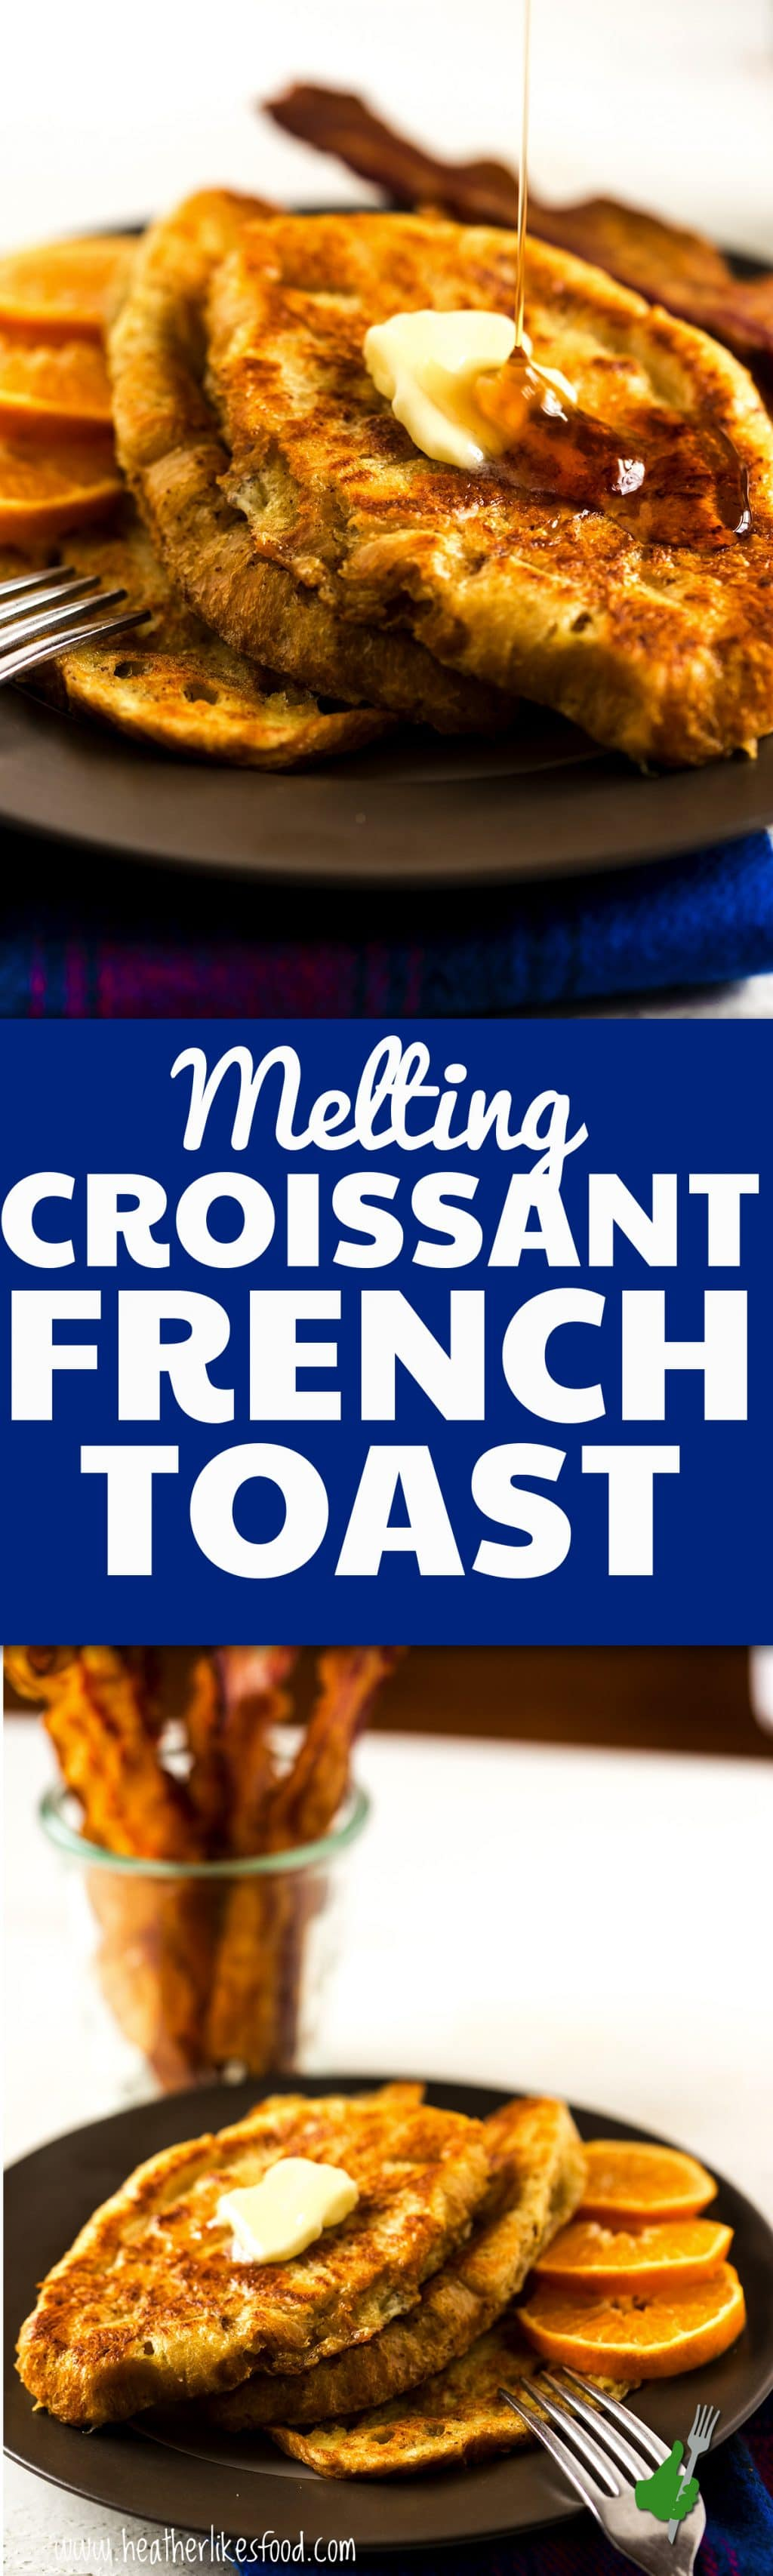 This isn't your regular french toast! The croissants bring this breakfast favorite to a whole new level! It's creamy, and buttery, and practically melt in your mouth. Pair it with a SmithfieldBaconBar and you've got one festive breakfast for the holidays!